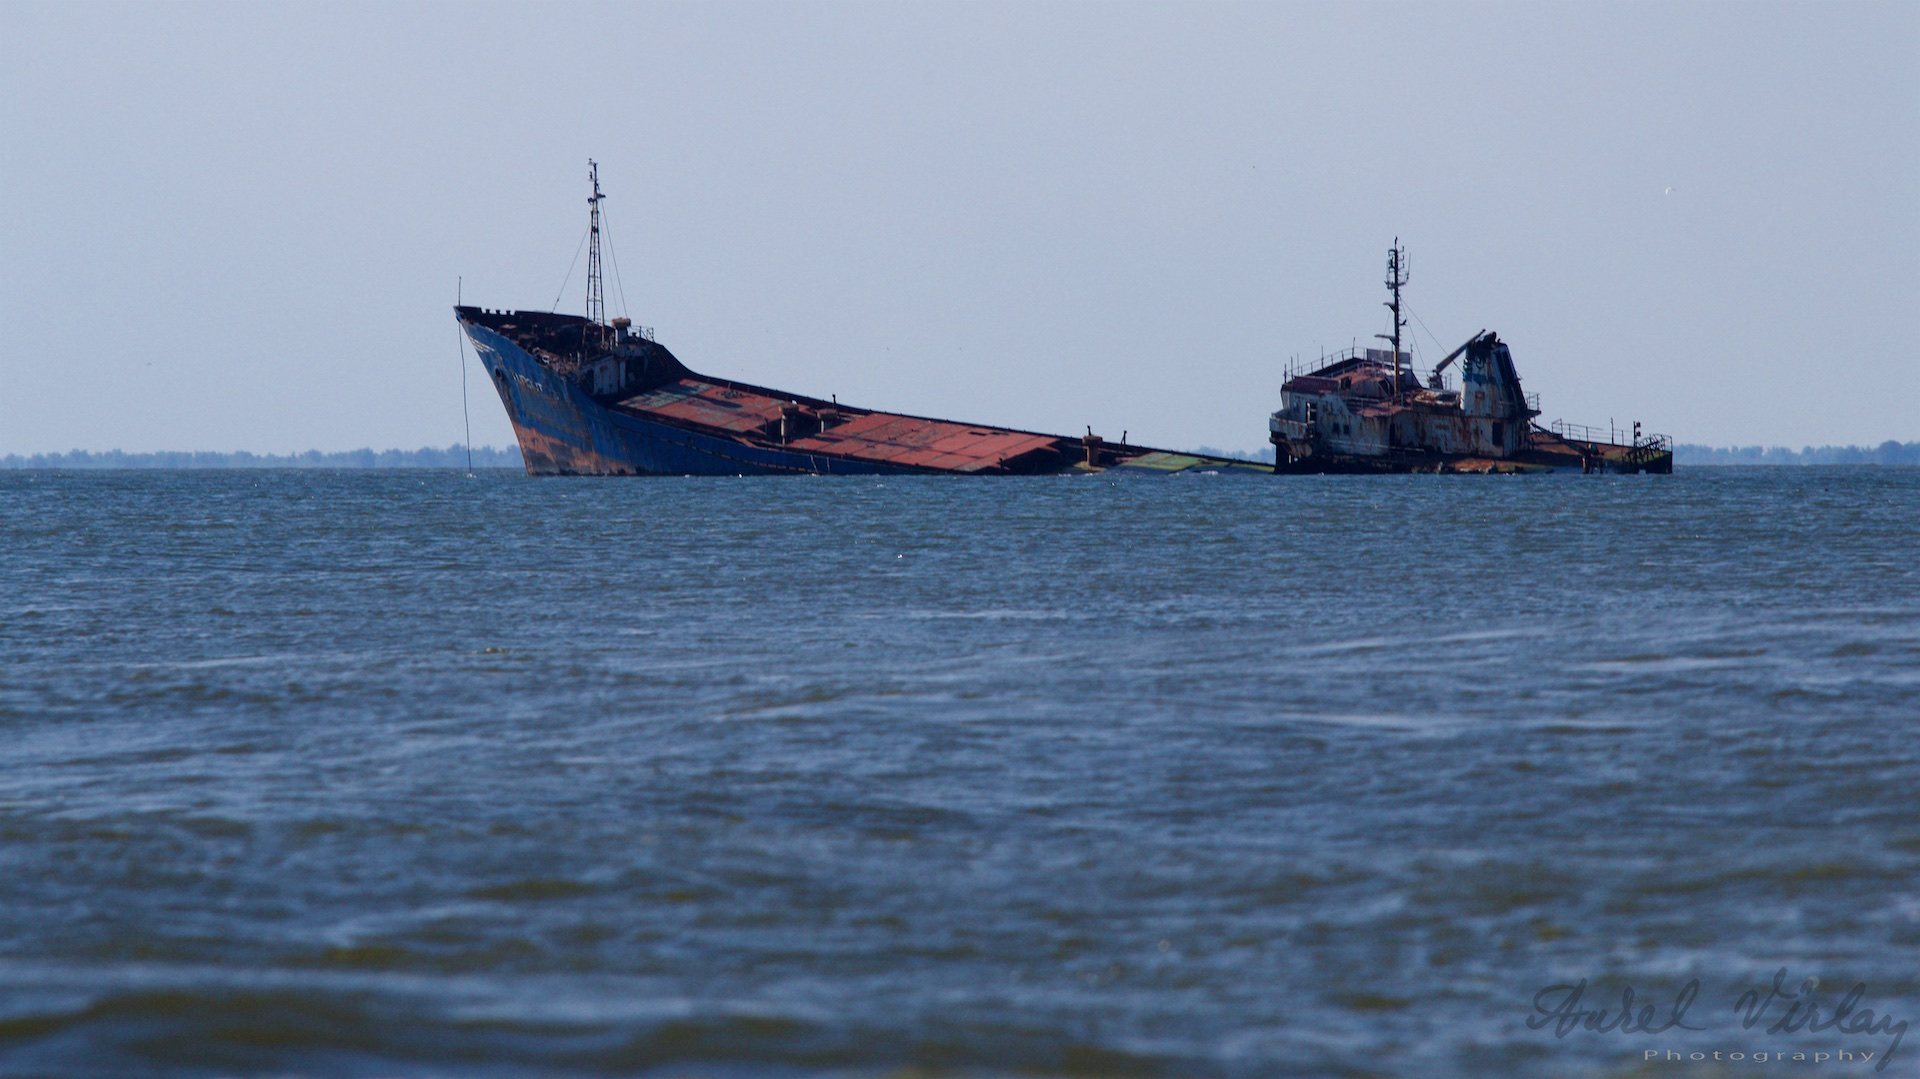 Any photographer wishes to capture the wreck at the entrance to the Danube Delta.